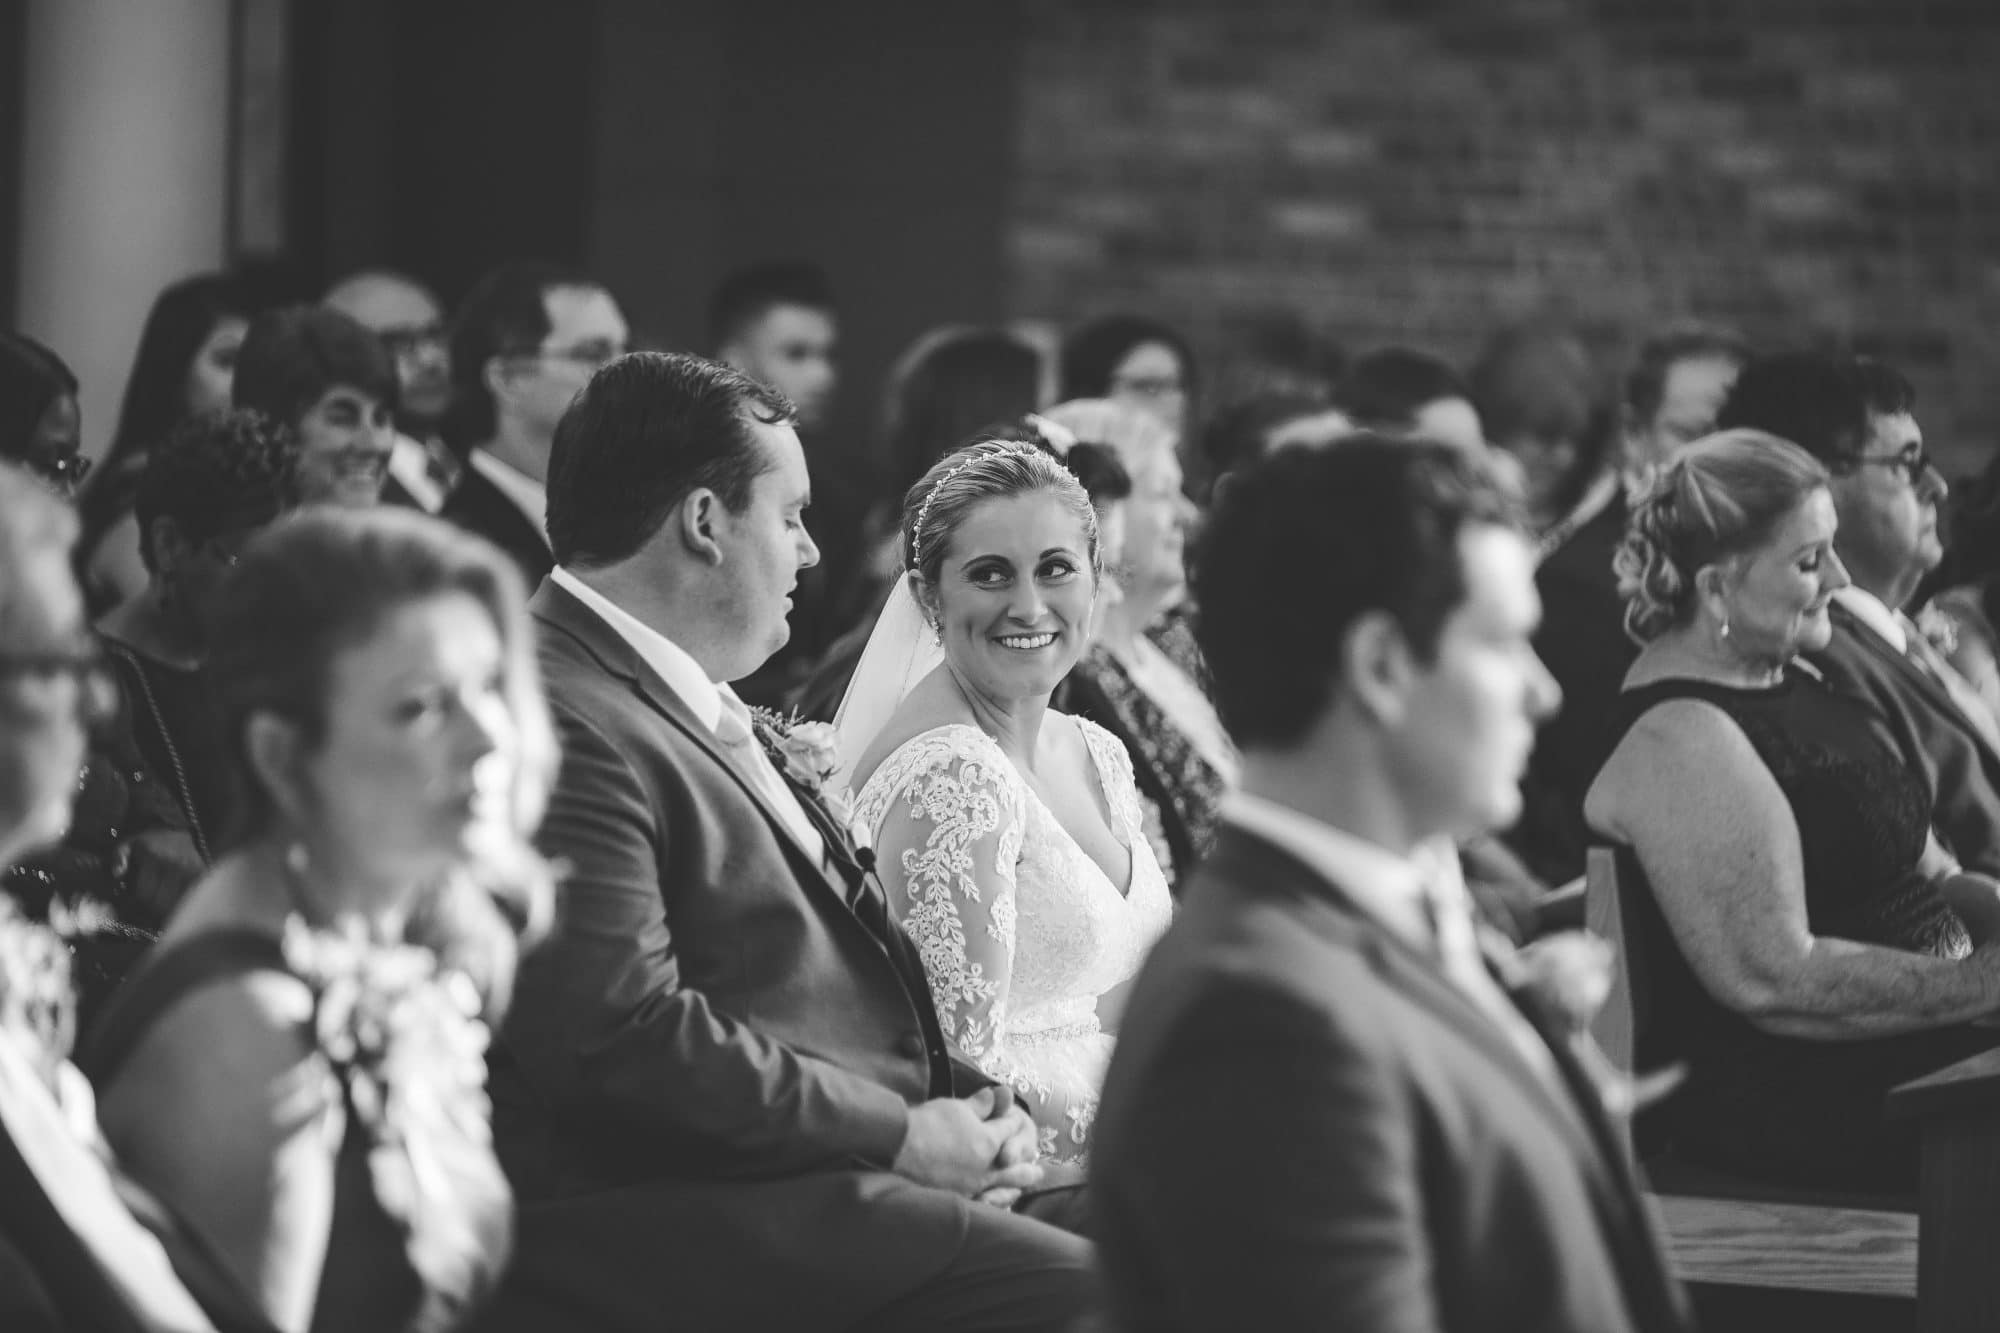 Rachel Doyle Photography - bride and groom smile at each other while seated among guests at ceremony